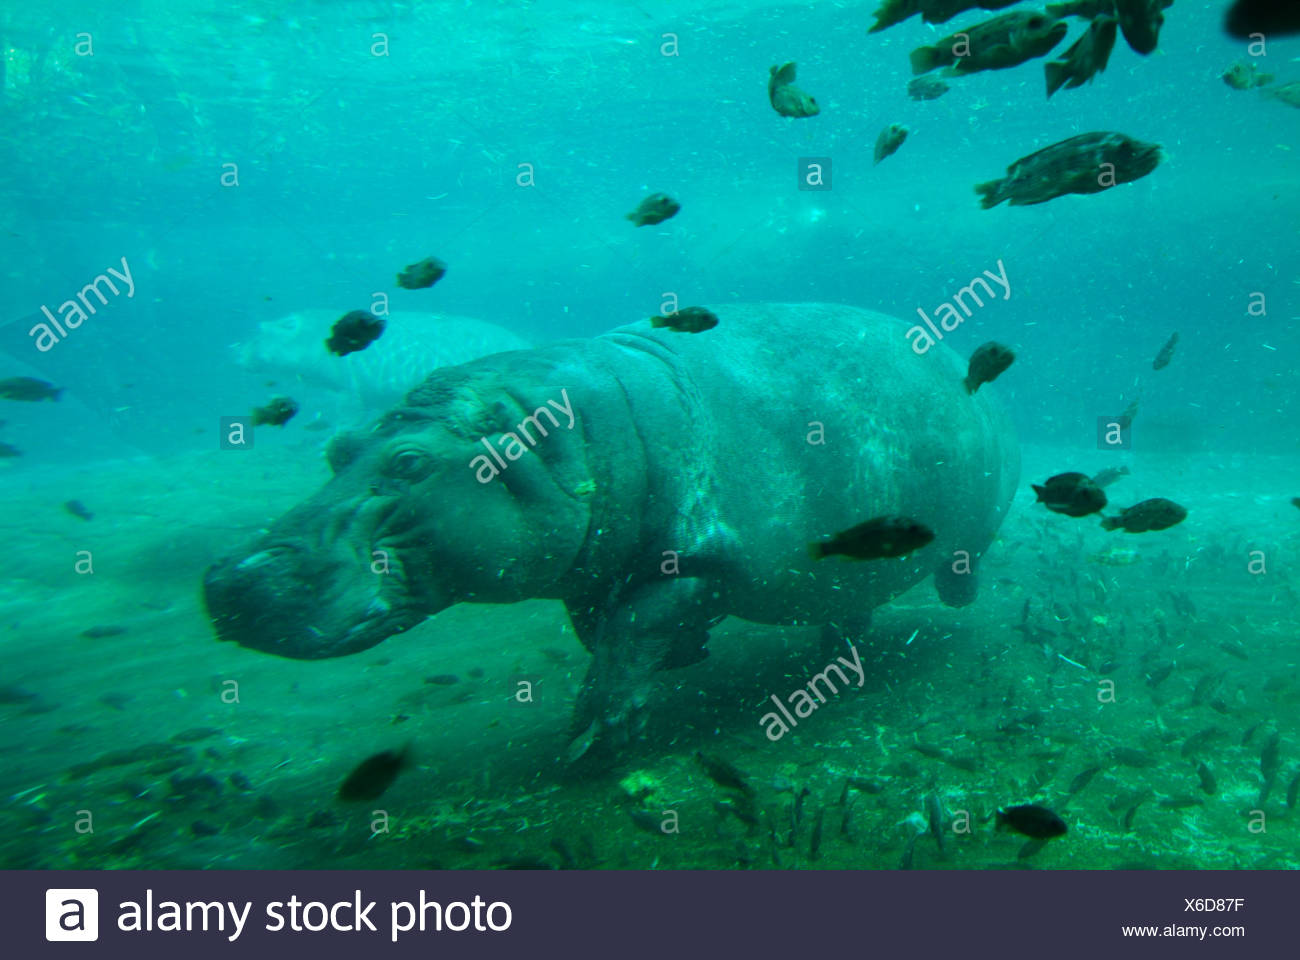 Hippo underwater swimming captive - Stock Image